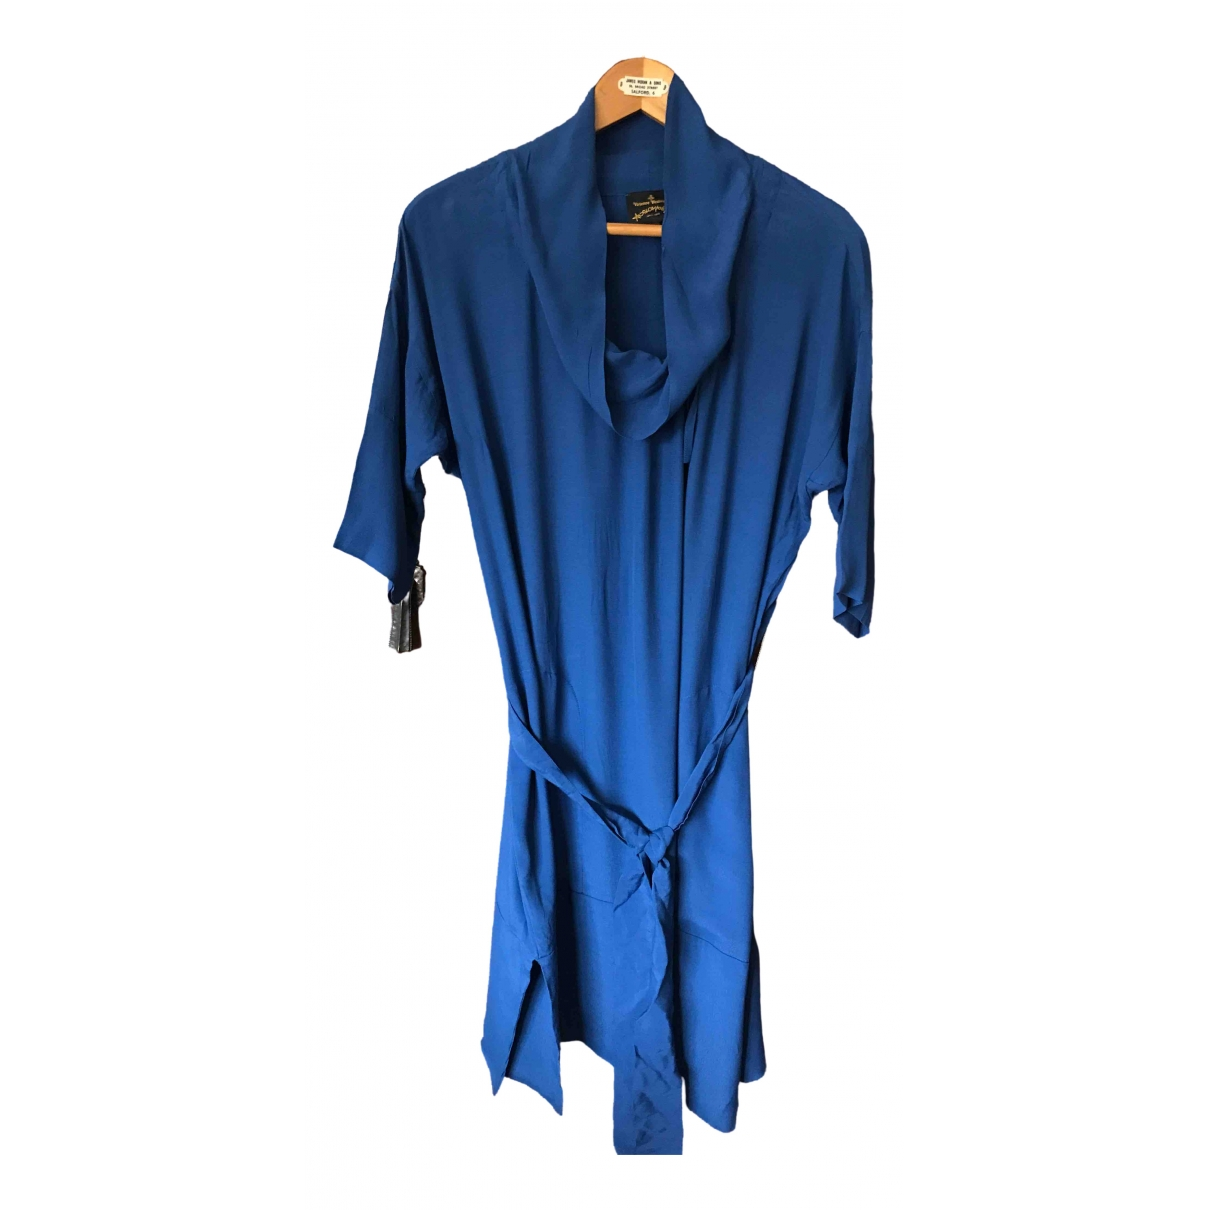 Vivienne Westwood Anglomania \N Blue dress for Women 42 IT